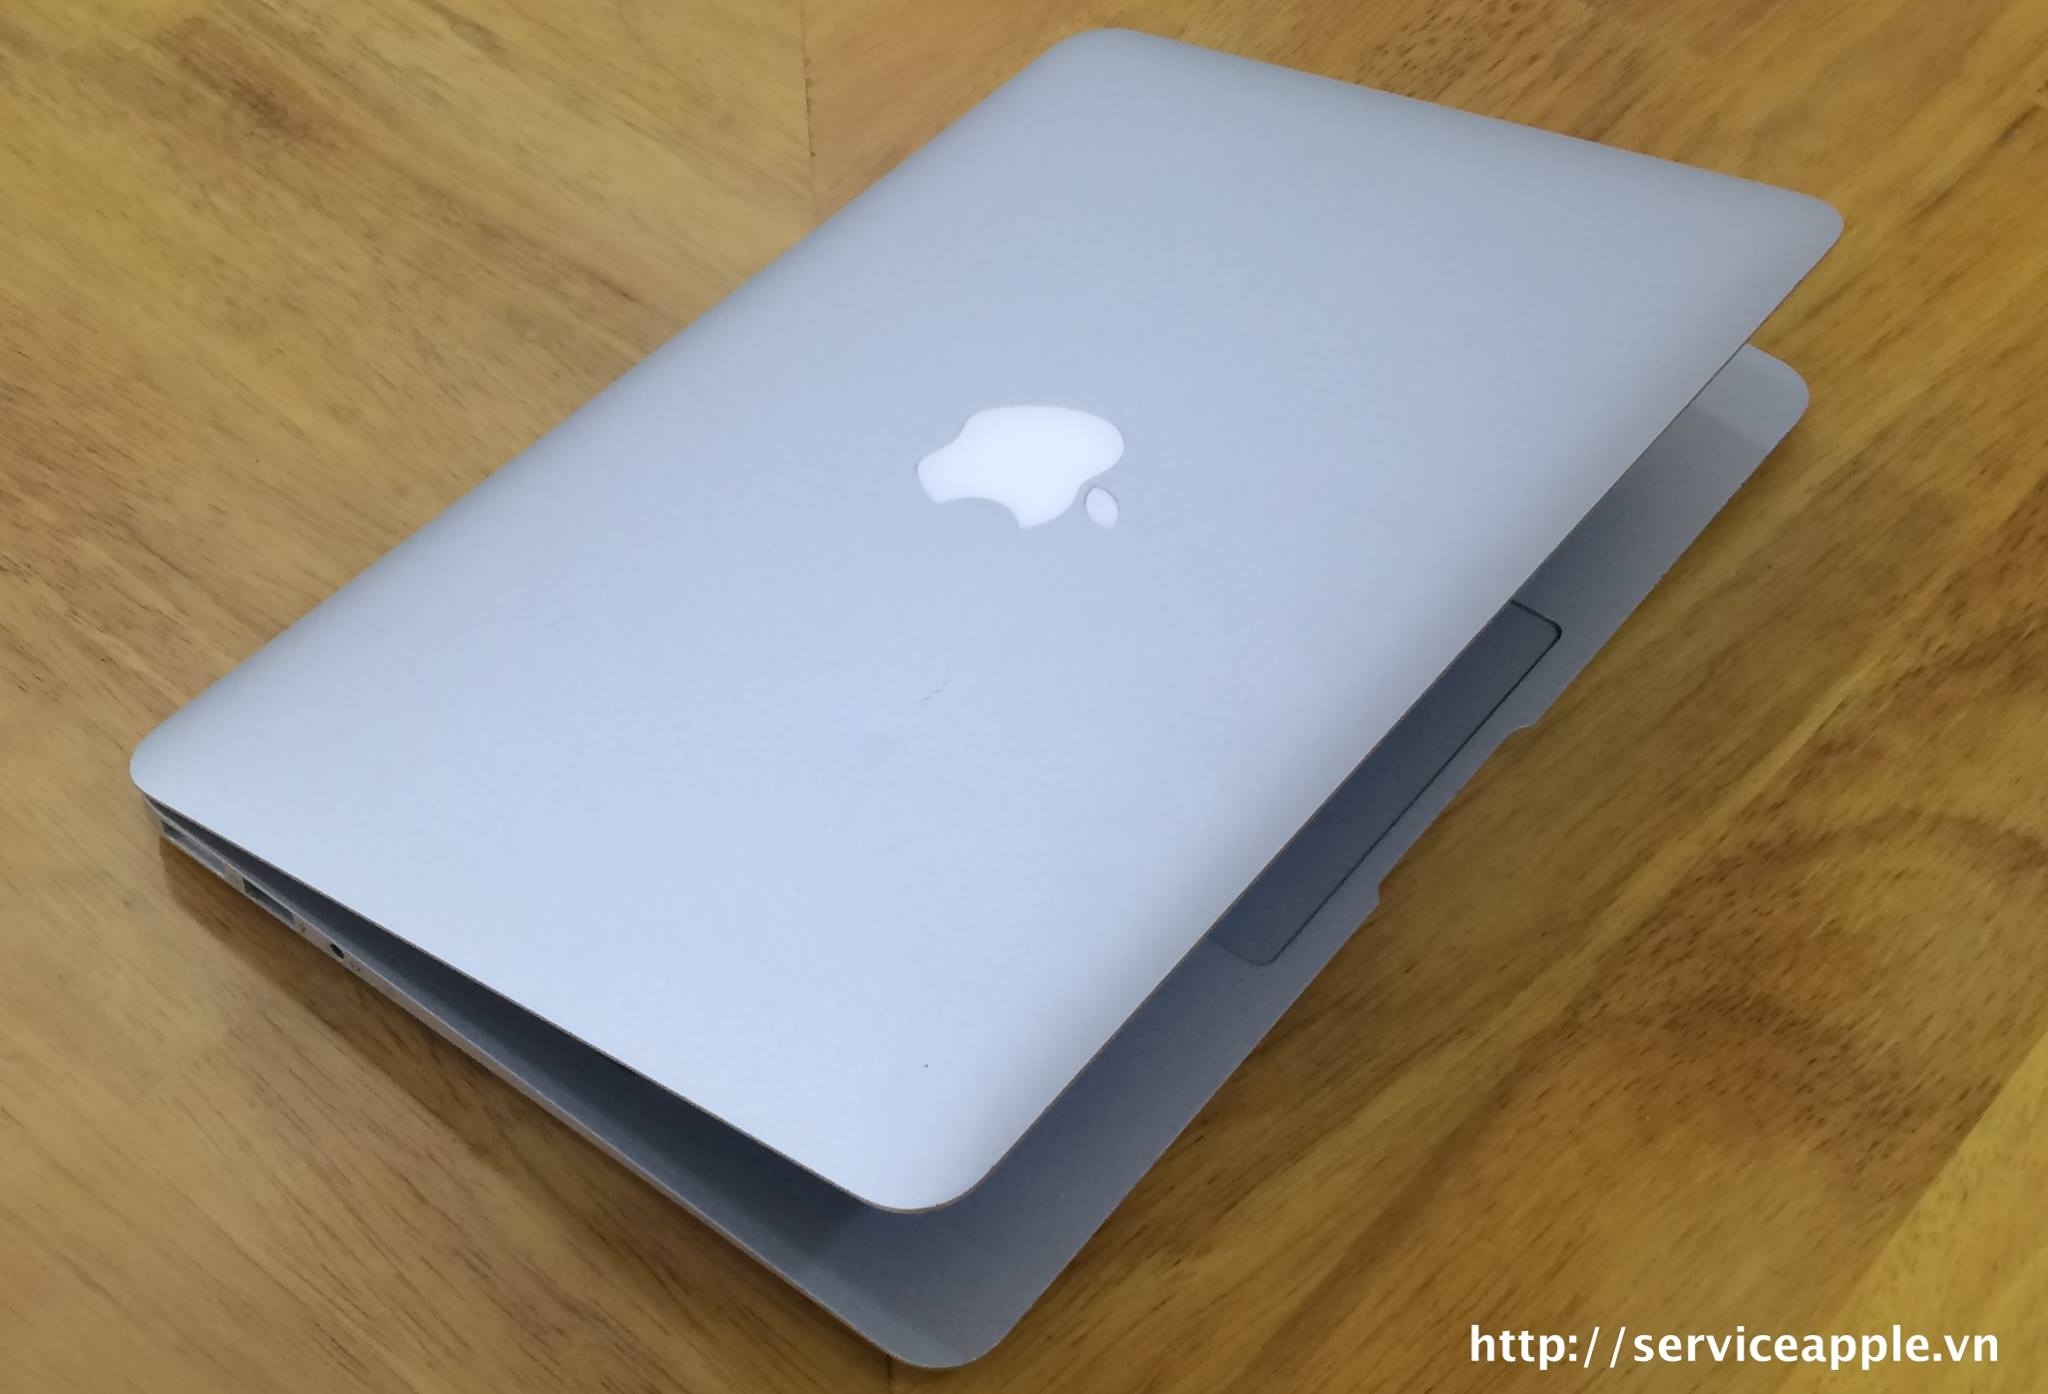 macbook air a1465 md223.jpg